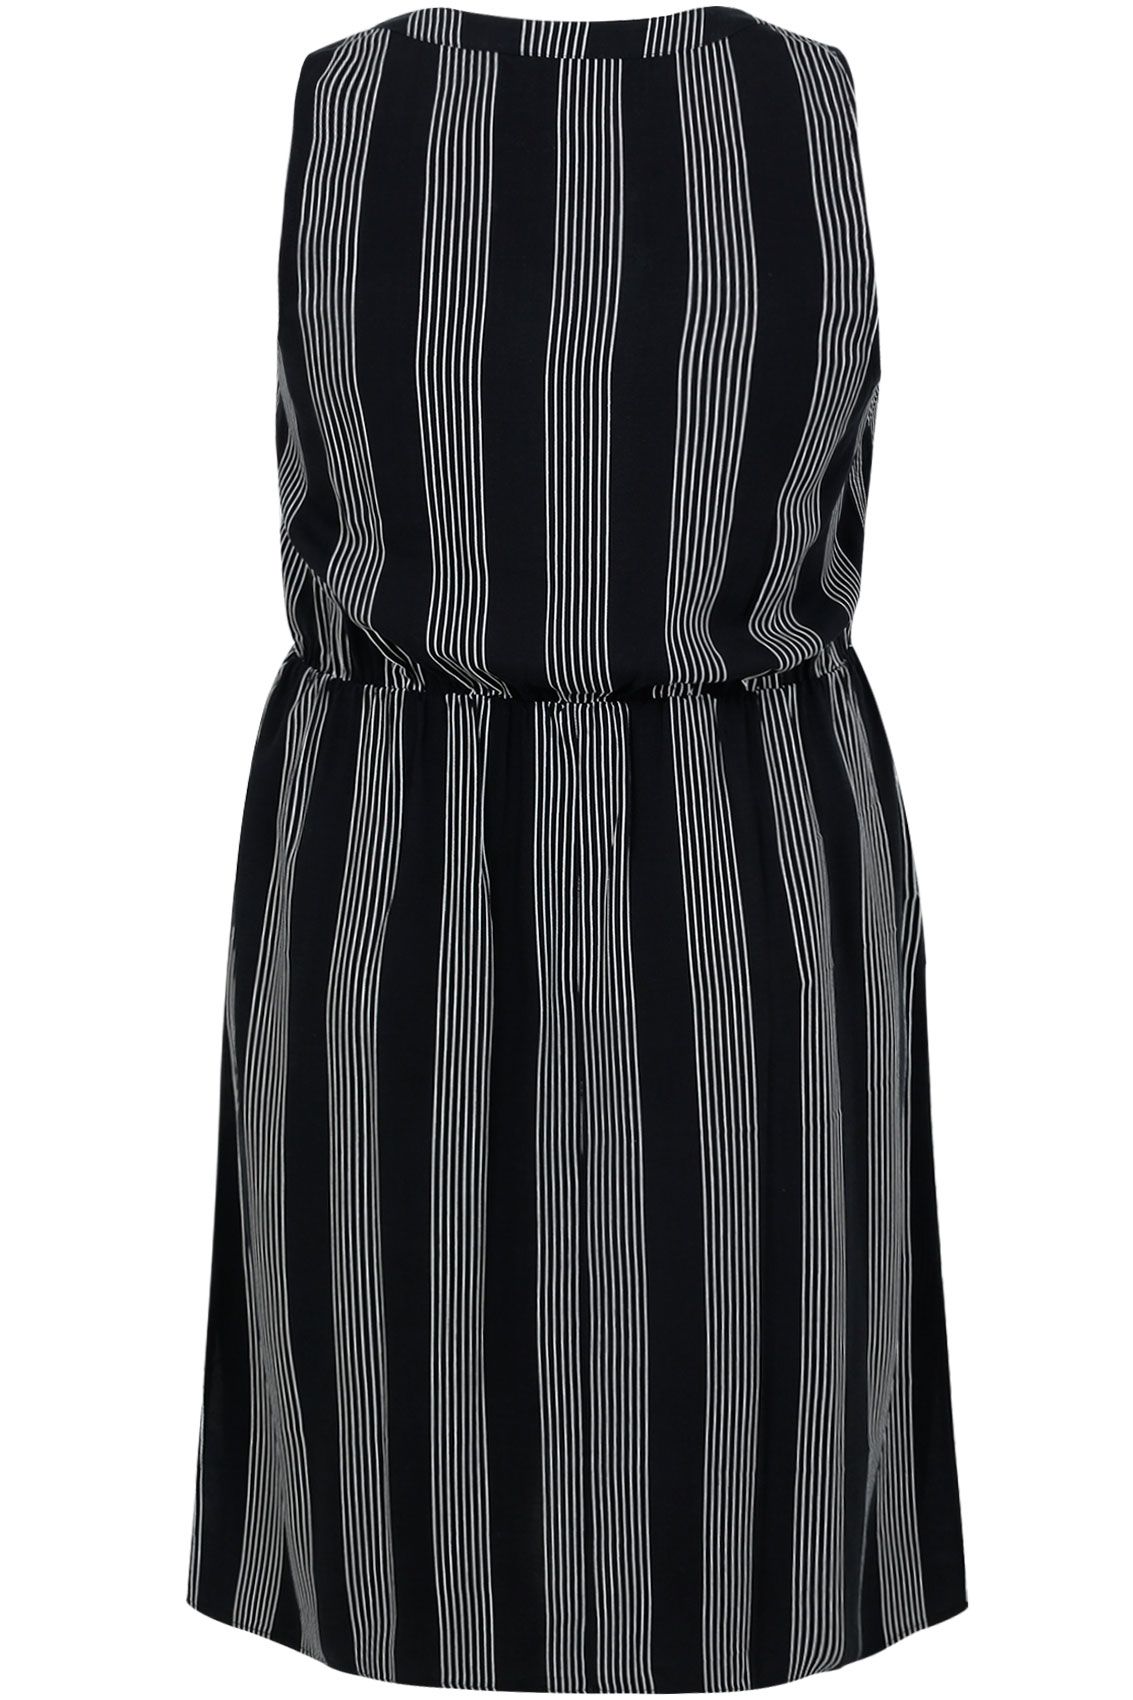 Black & White Pin Stripe Sleeveless Shirt Dress Plus Size ...